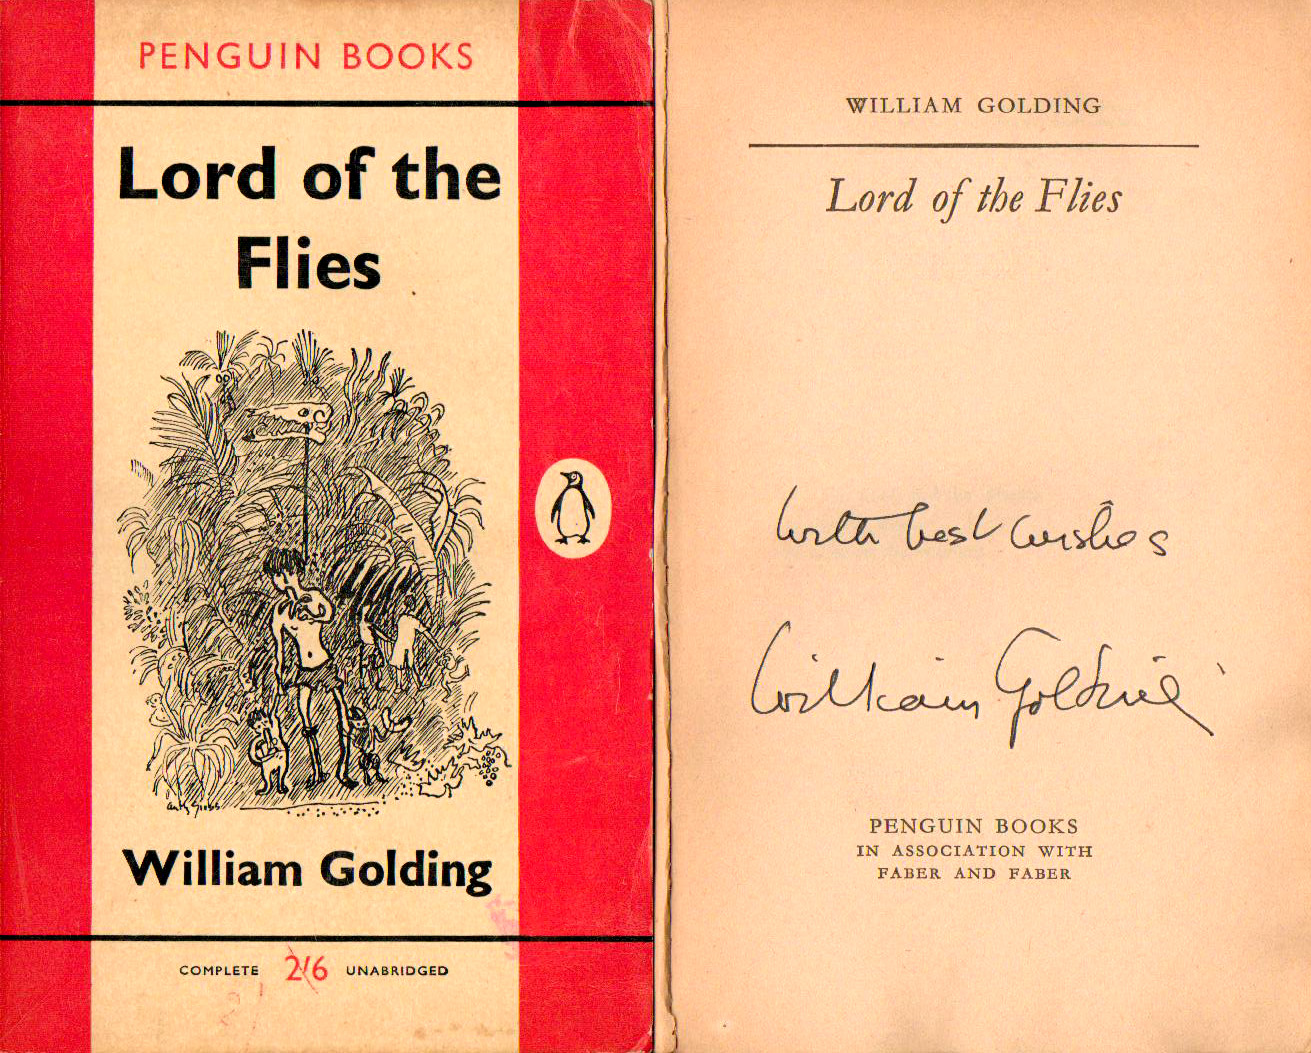 biography of william golding essay